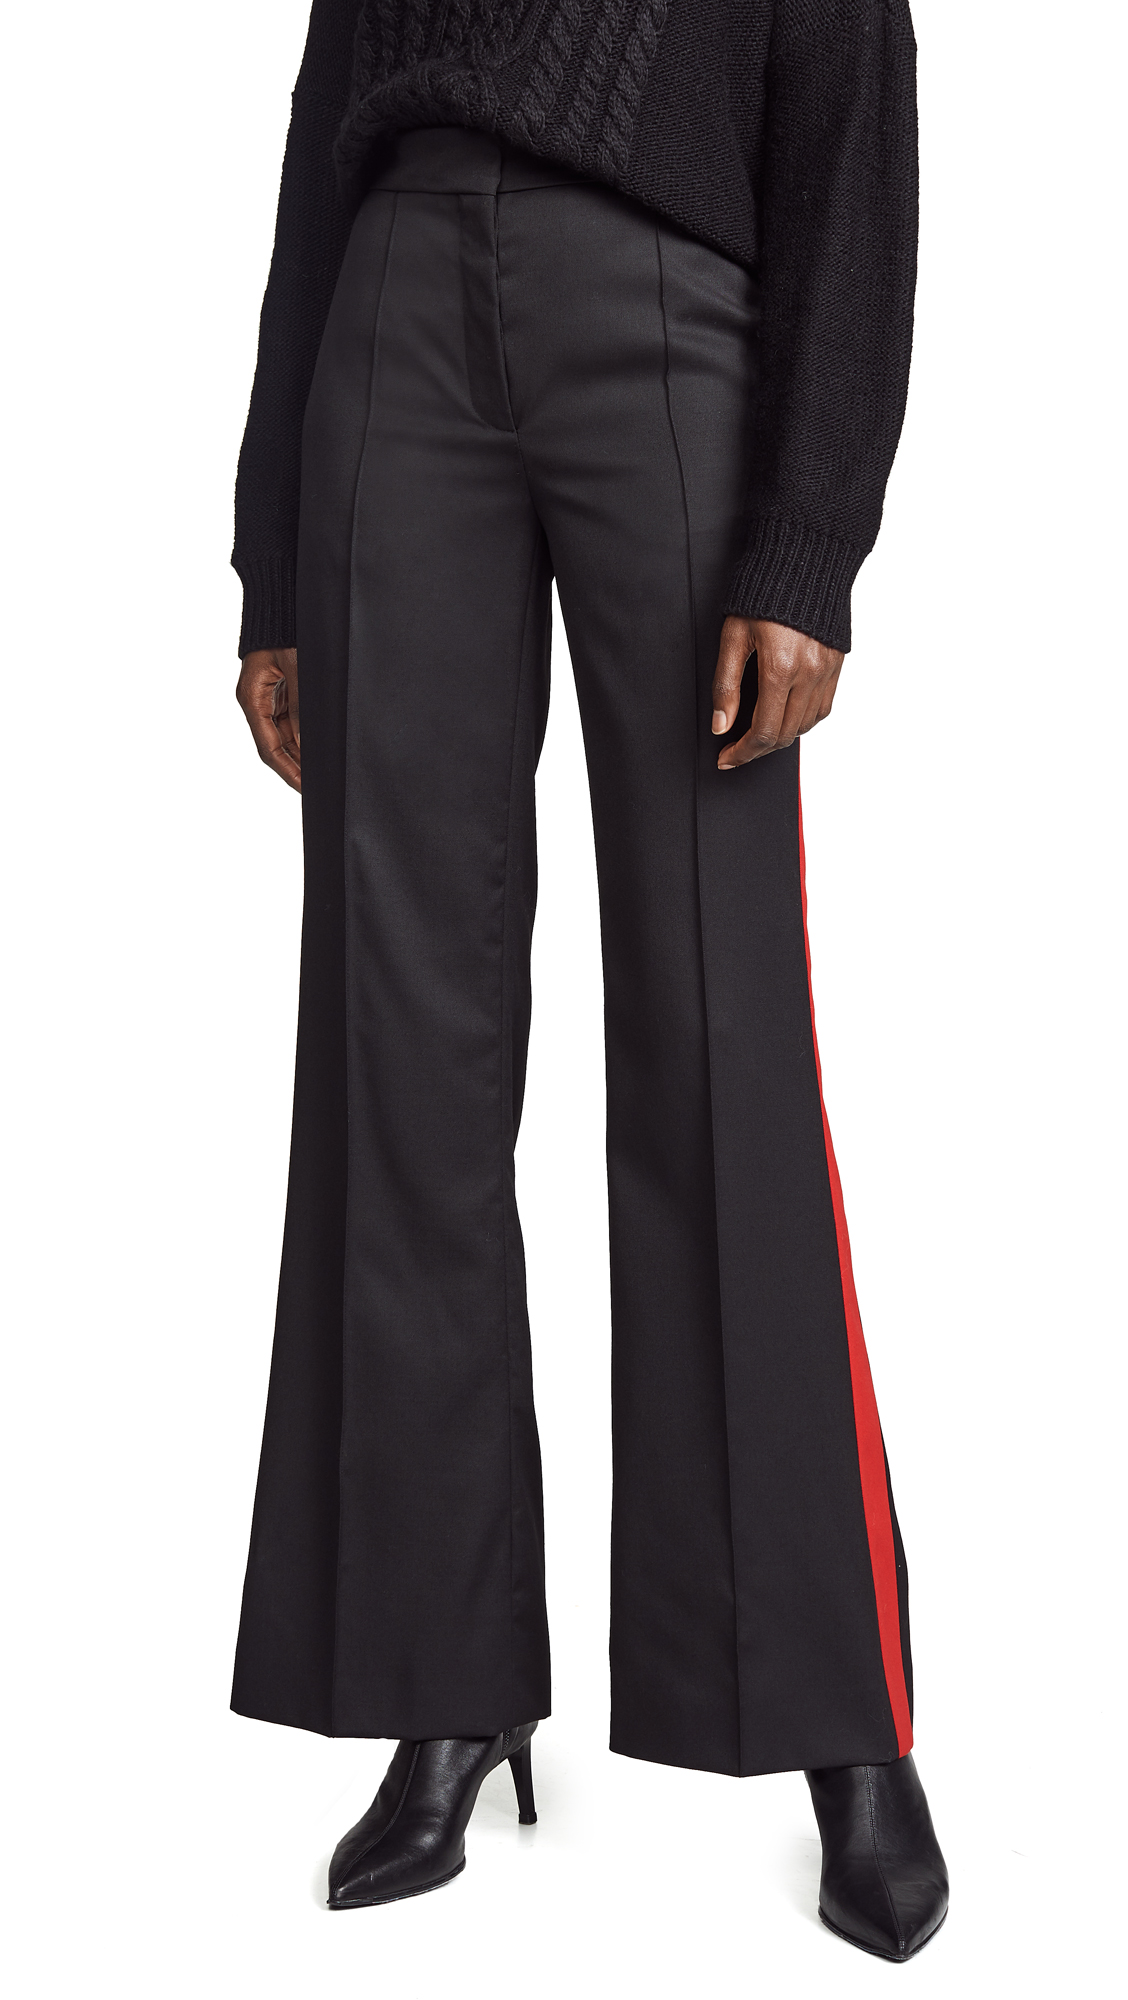 Nina Ricci Contrast Band Trousers - Black/Red